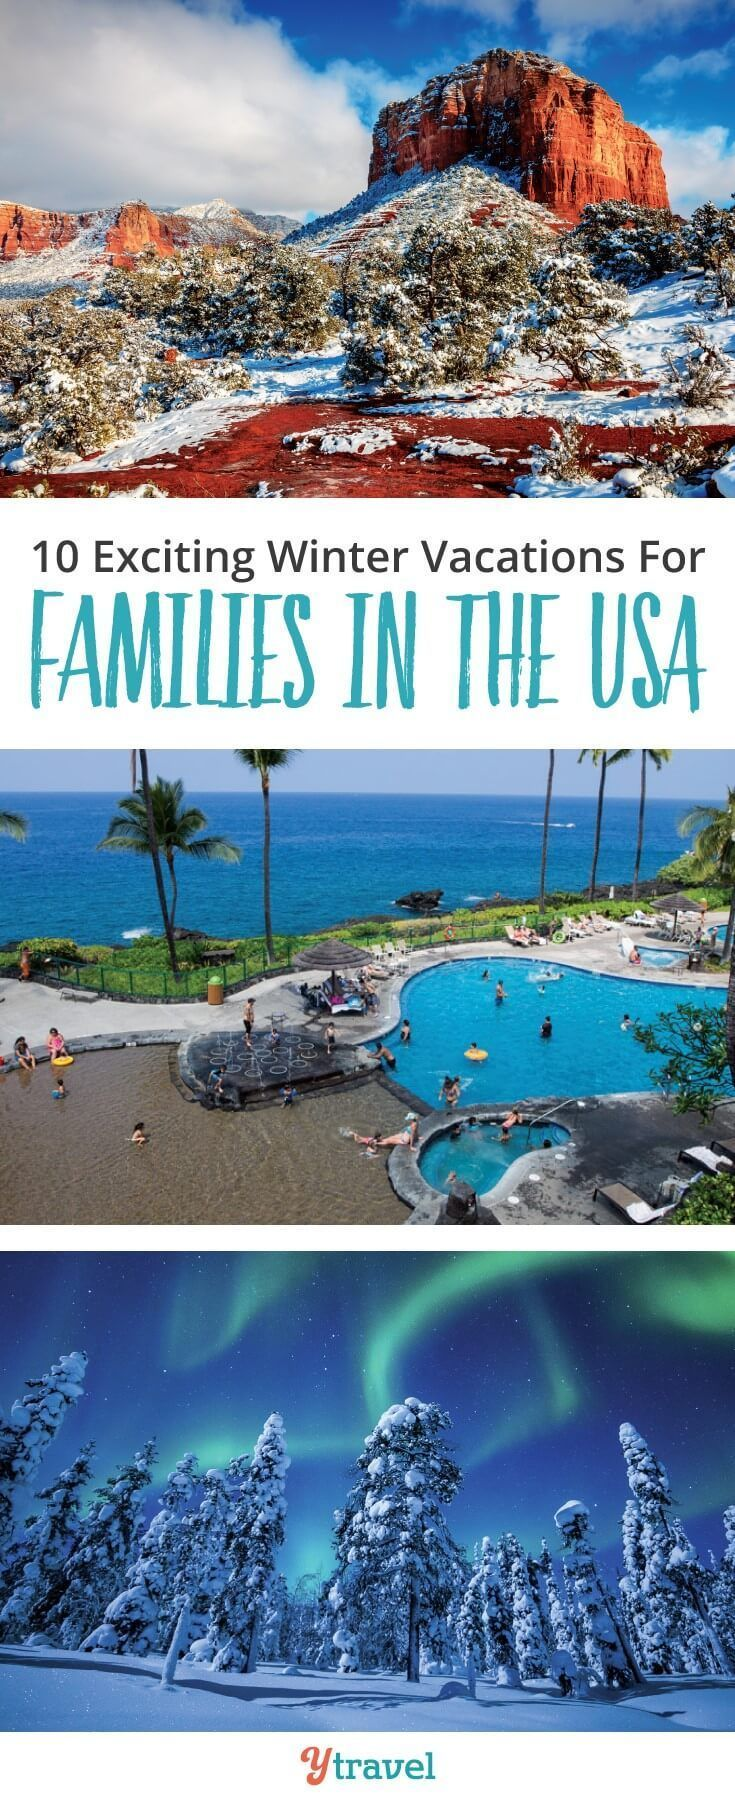 10 exciting winter vacations for families in the usa | usa travel